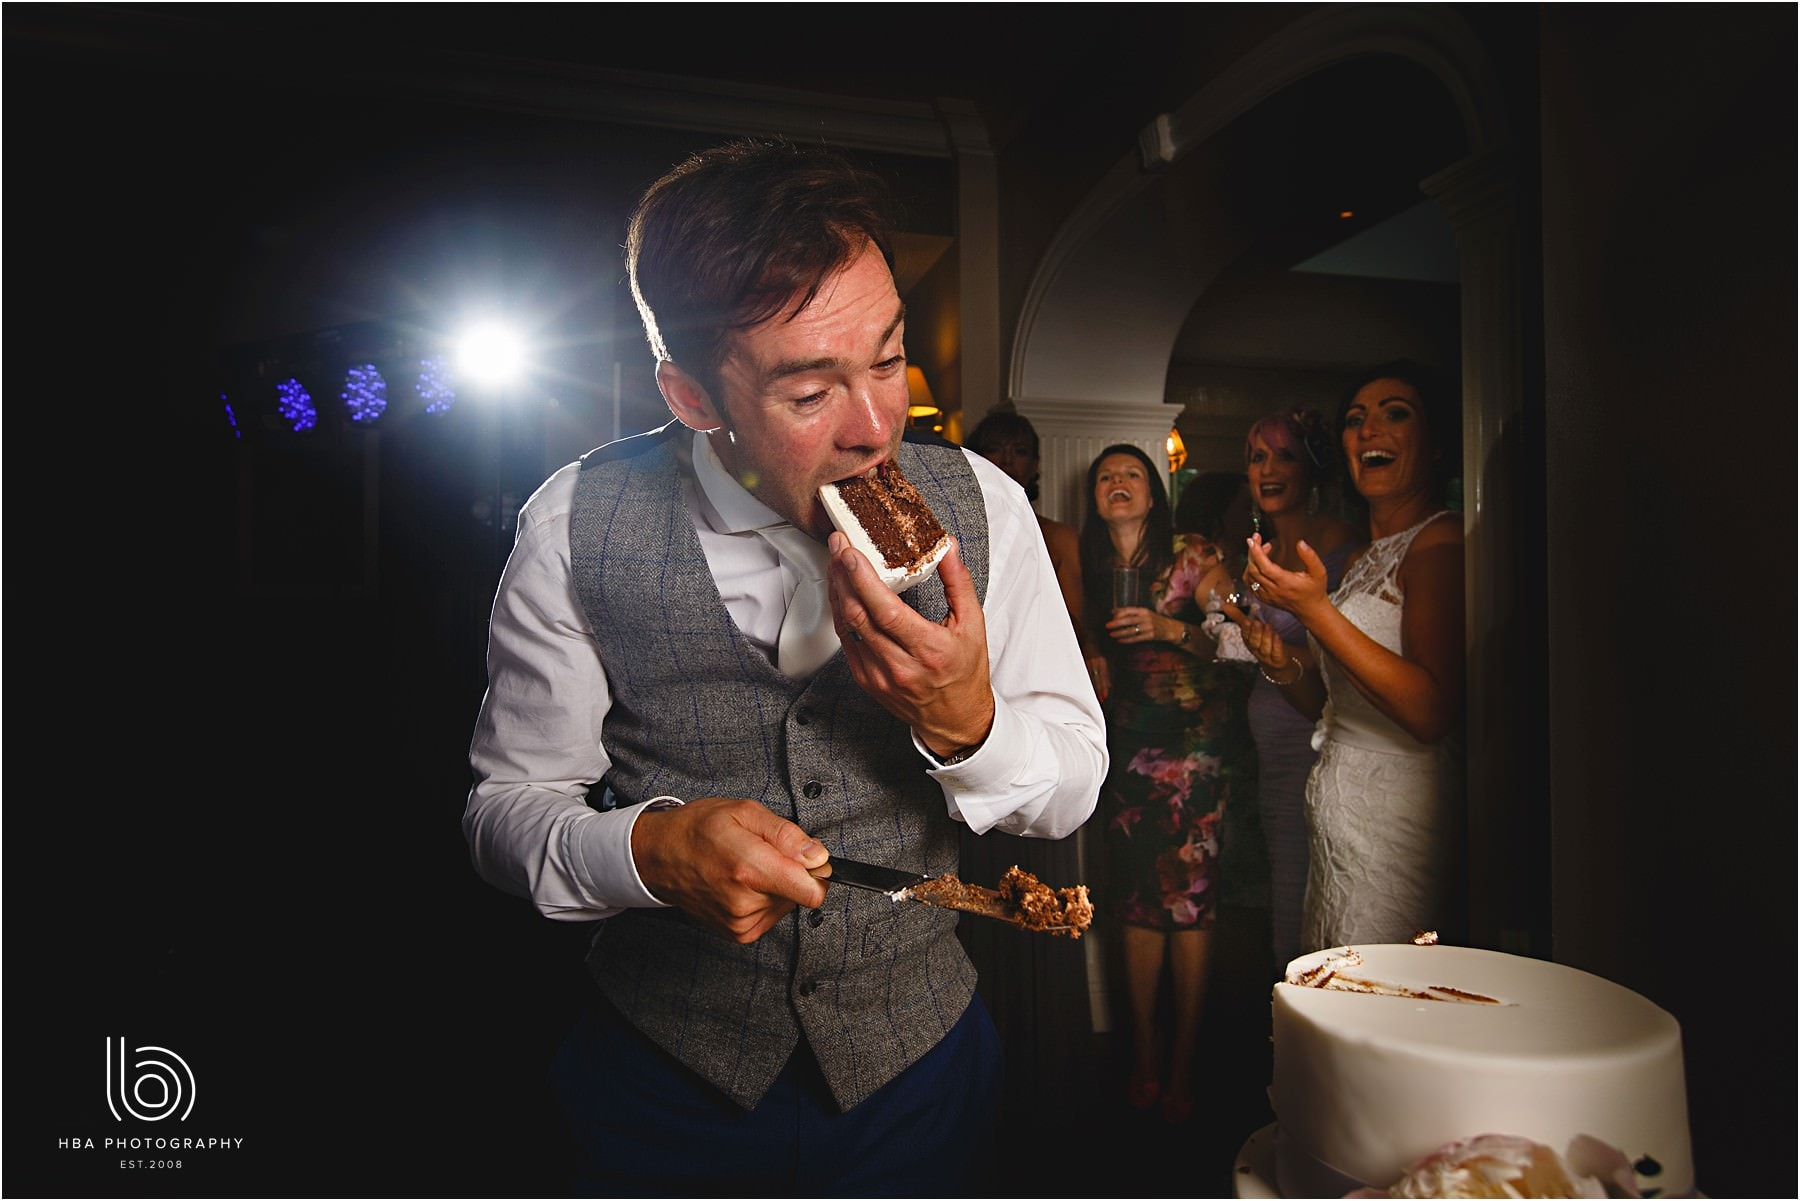 the groom eating the wedding cake